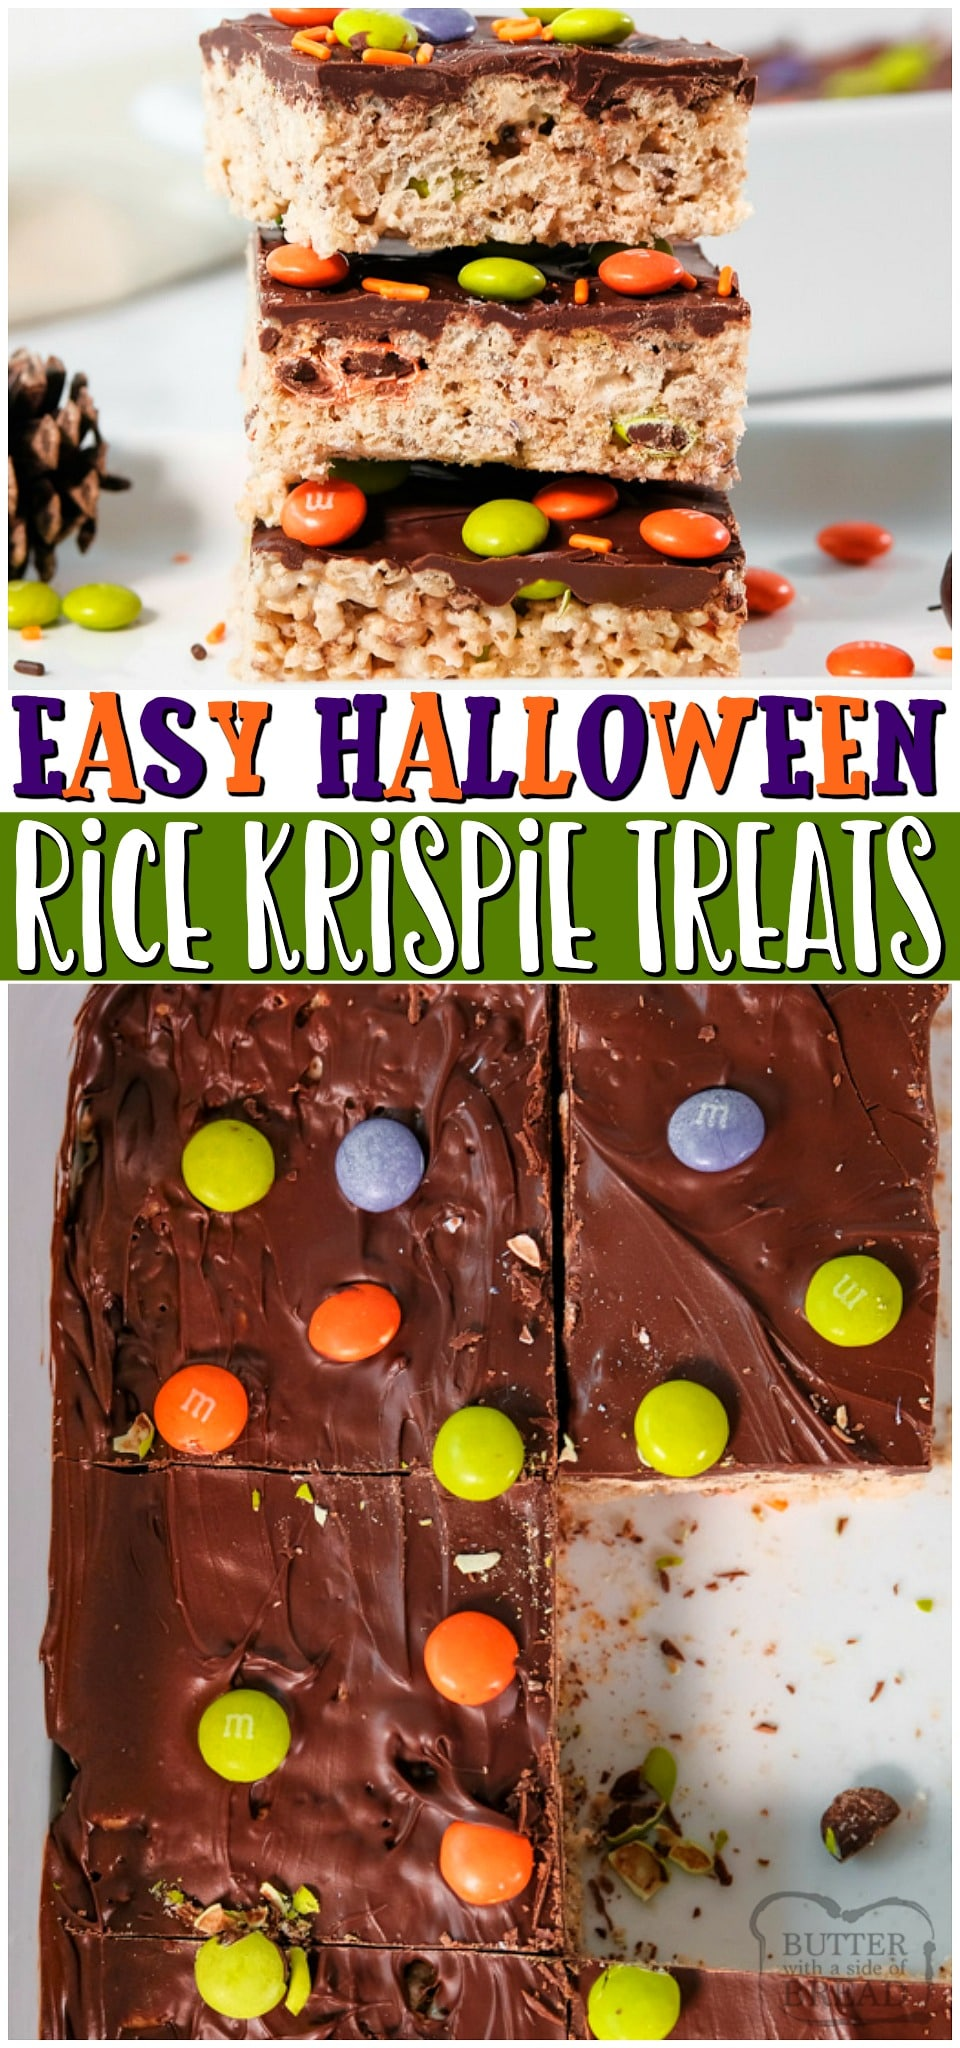 Halloween Rice Krispie Treats are the perfect Halloween dessert this fall! With sprinkles, chocolate, and marshmallow packed cereal bars in every bite, it's sure to be a spooky delight. #Halloween #KrispieTreats #Marshmallows #Dessert #EasyRecipe from BUTTER WITH A SIDE OF BREAD